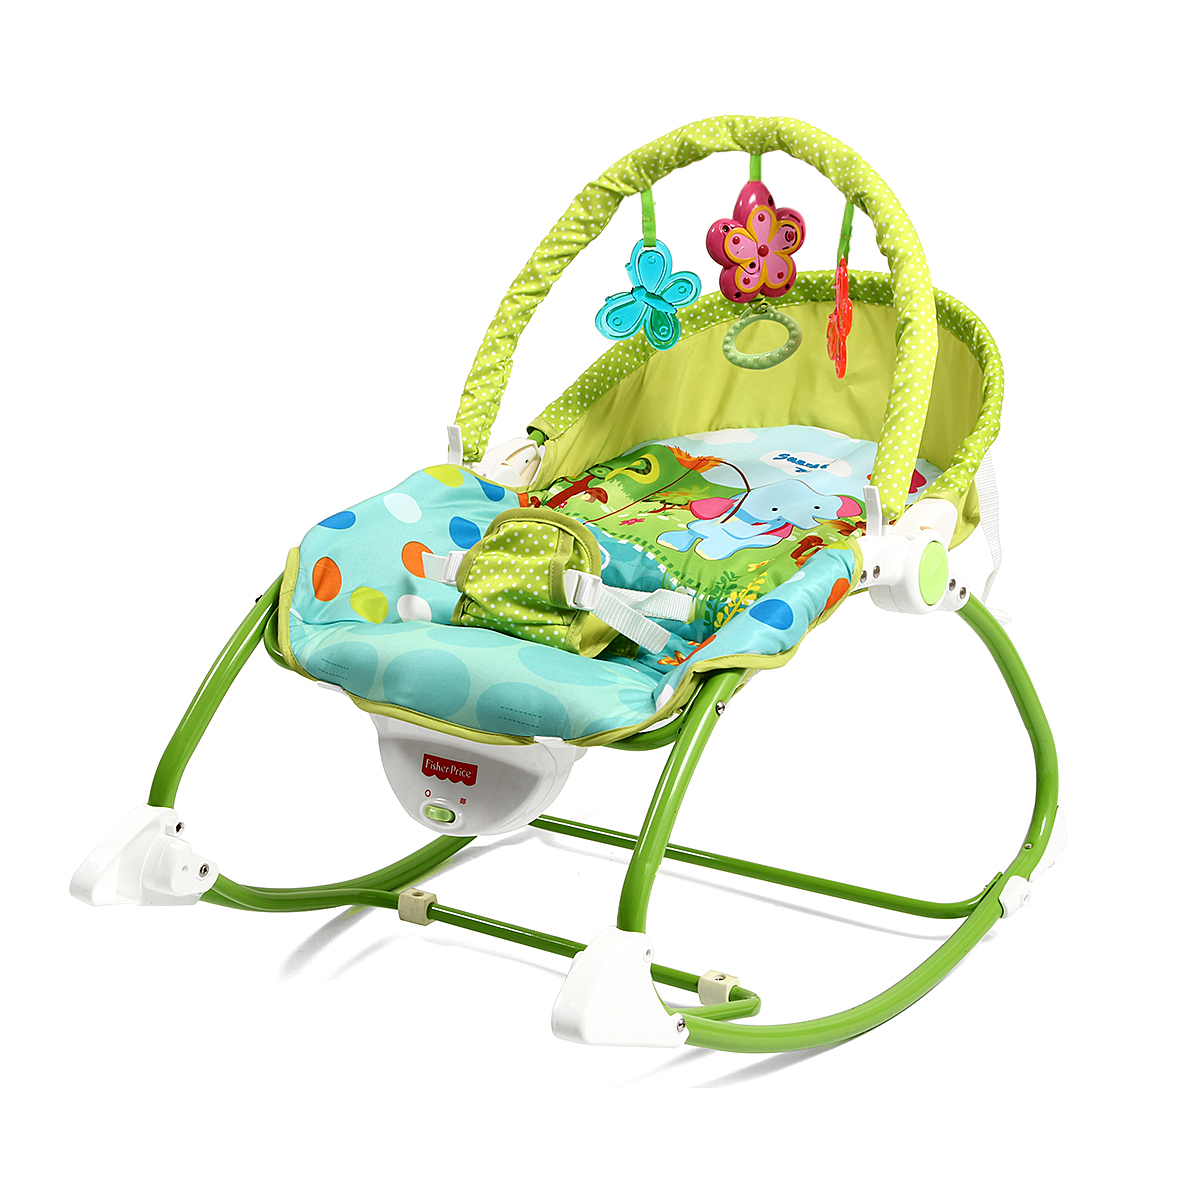 7b5b08f53e1 FISHER PRICE Baby Bouncer Rocking Chair With Music Vibration - FYLO